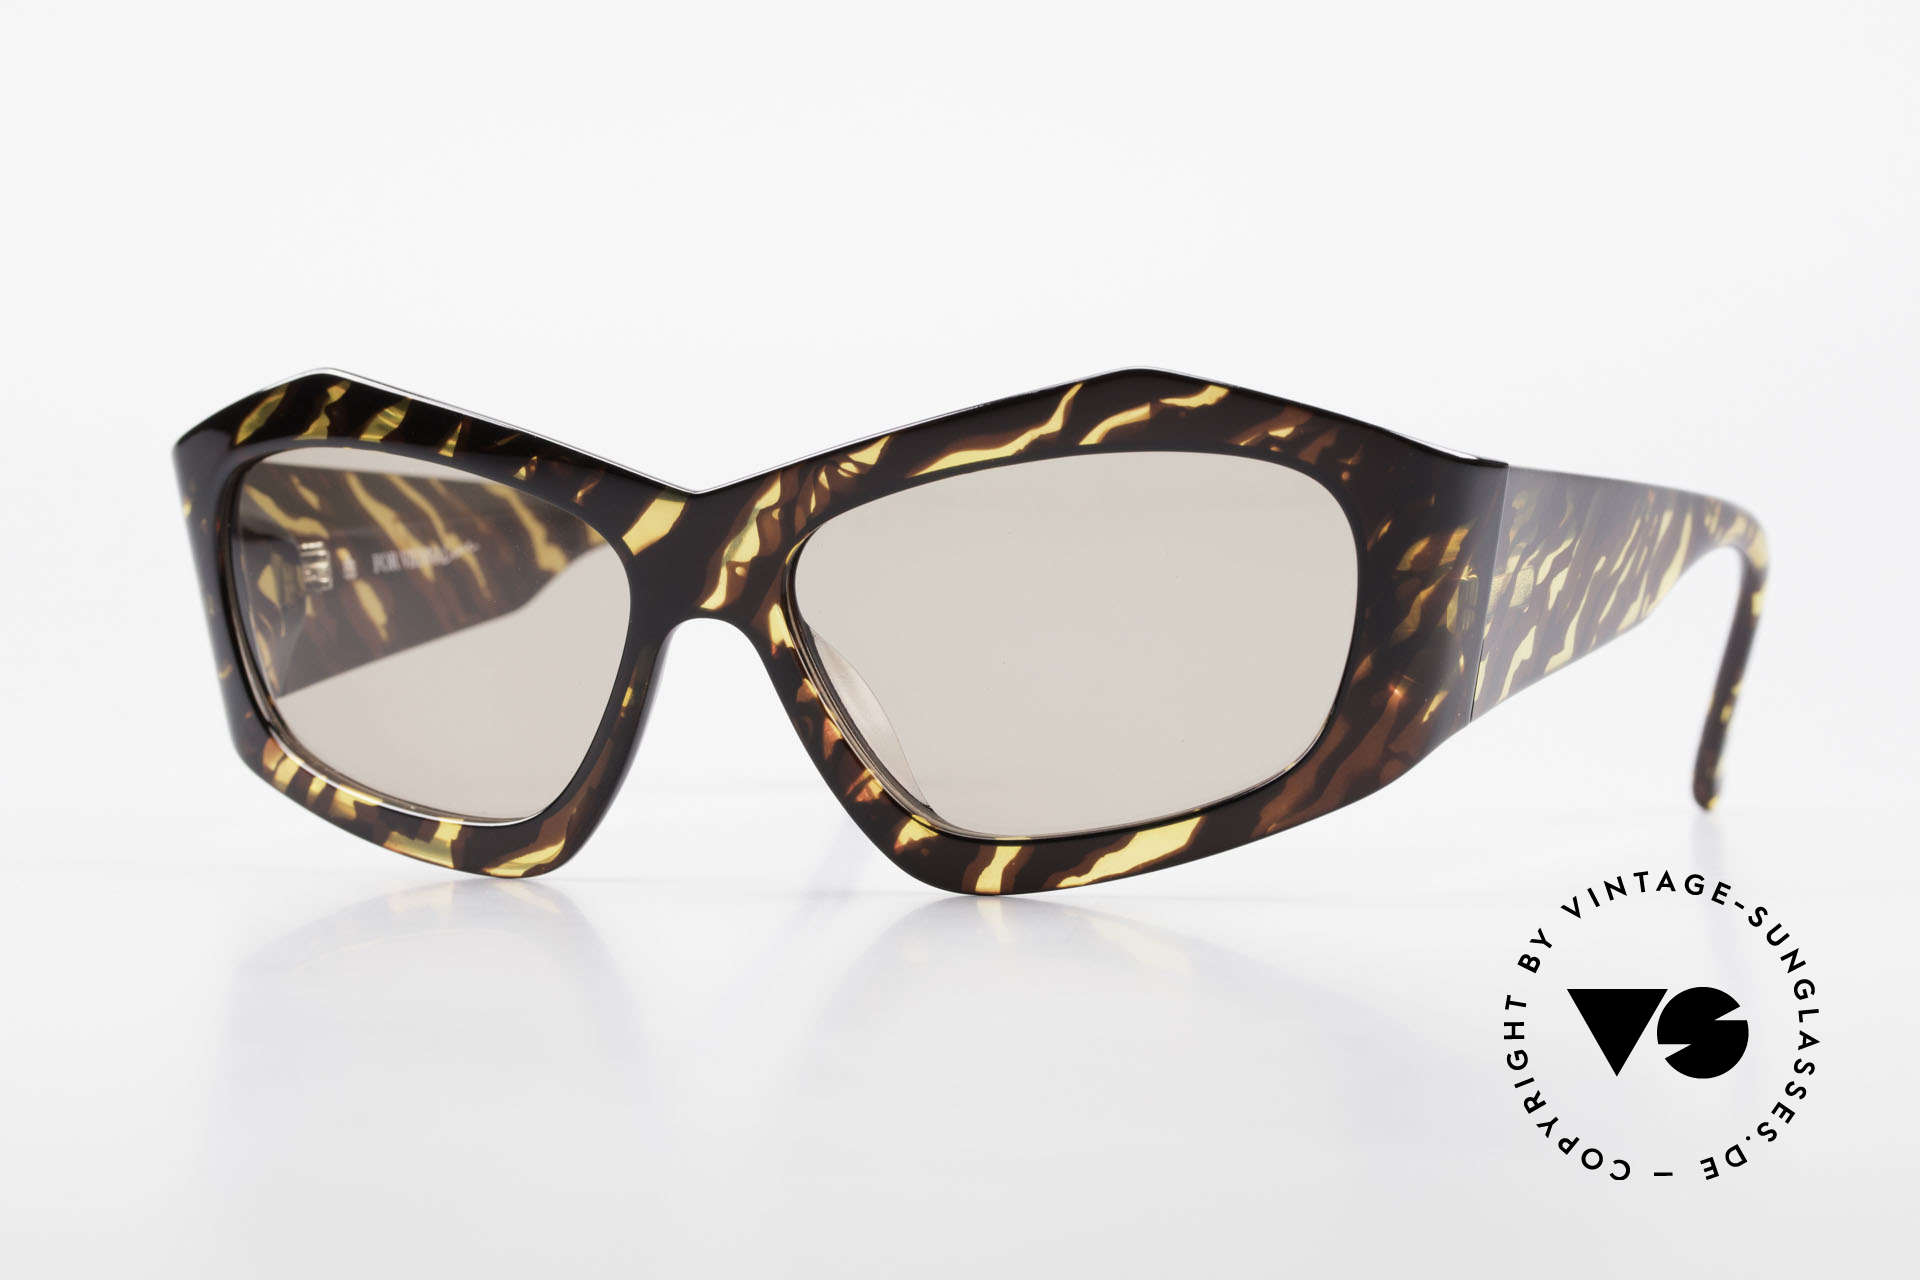 Paloma Picasso 1461 Case Can Be Used As Wallet, rare 1990's vintage sunglasses by Paloma PICASSO, Made for Women